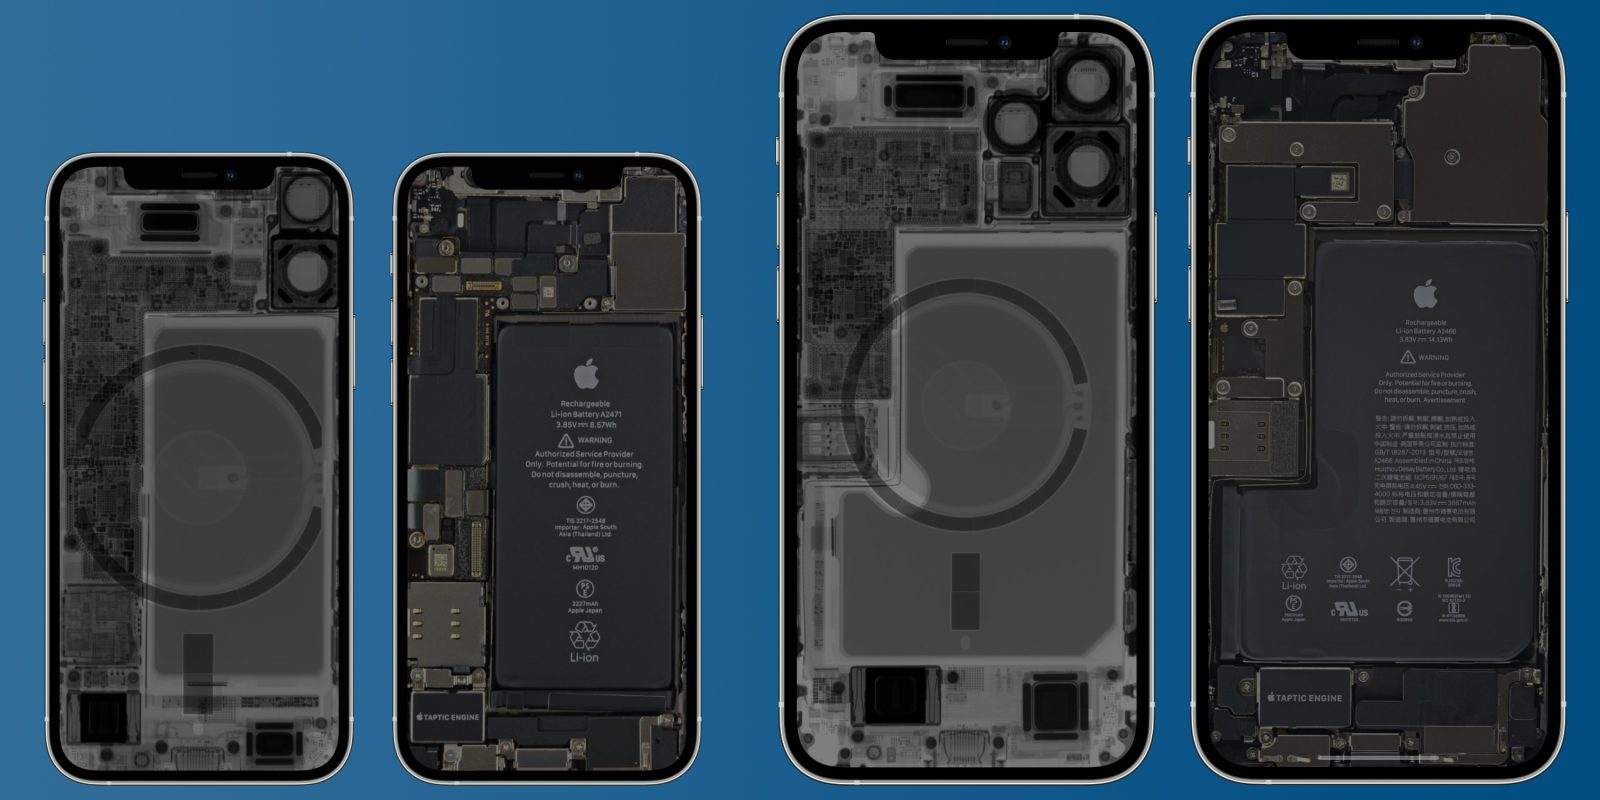 Peek inside your new iPhone 12 mini and iPhone 12 Pro Max ...